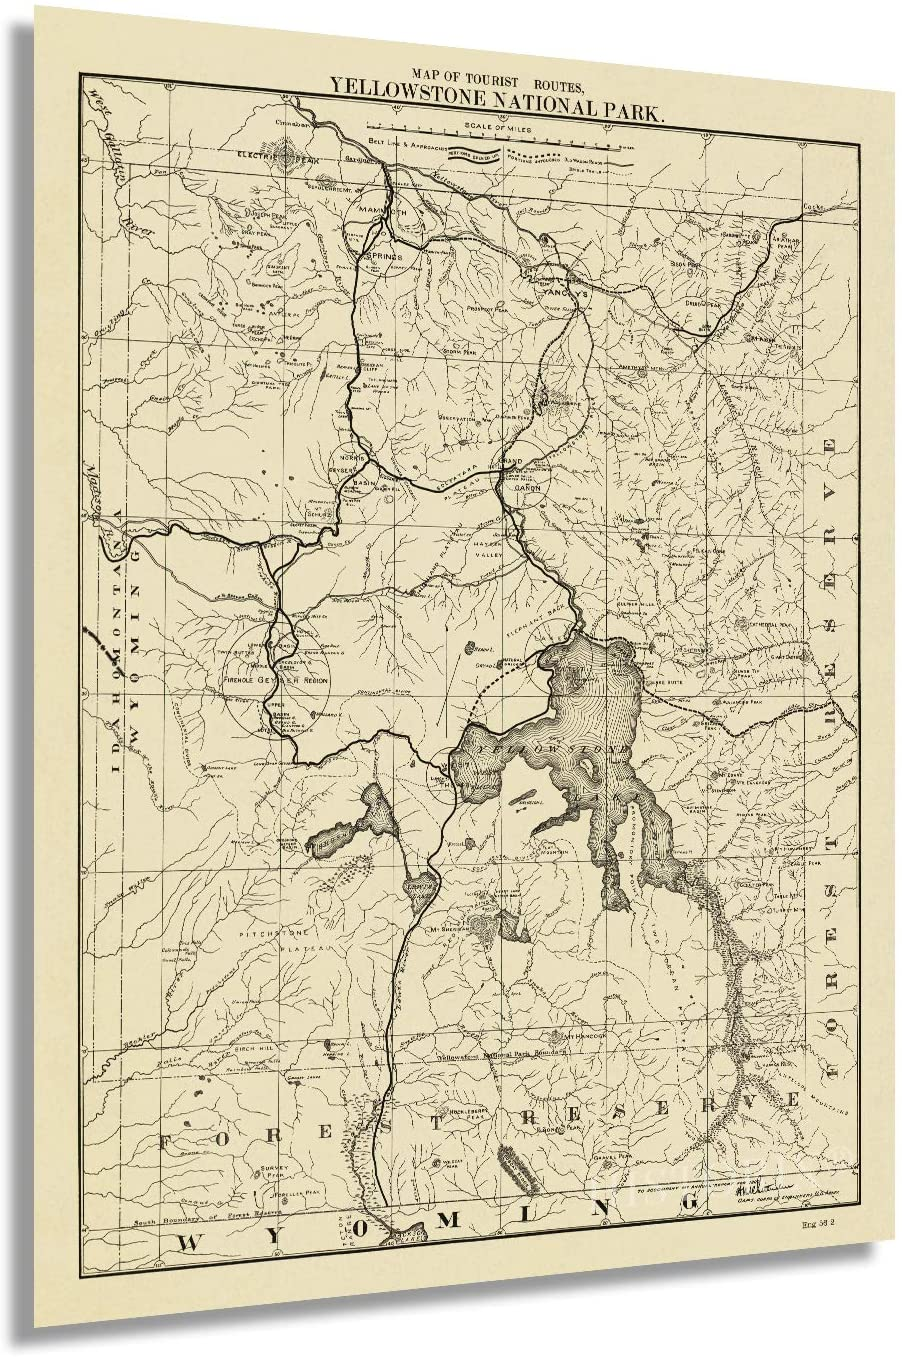 1900 Map of the tourist routes, Yellowstone National Park.